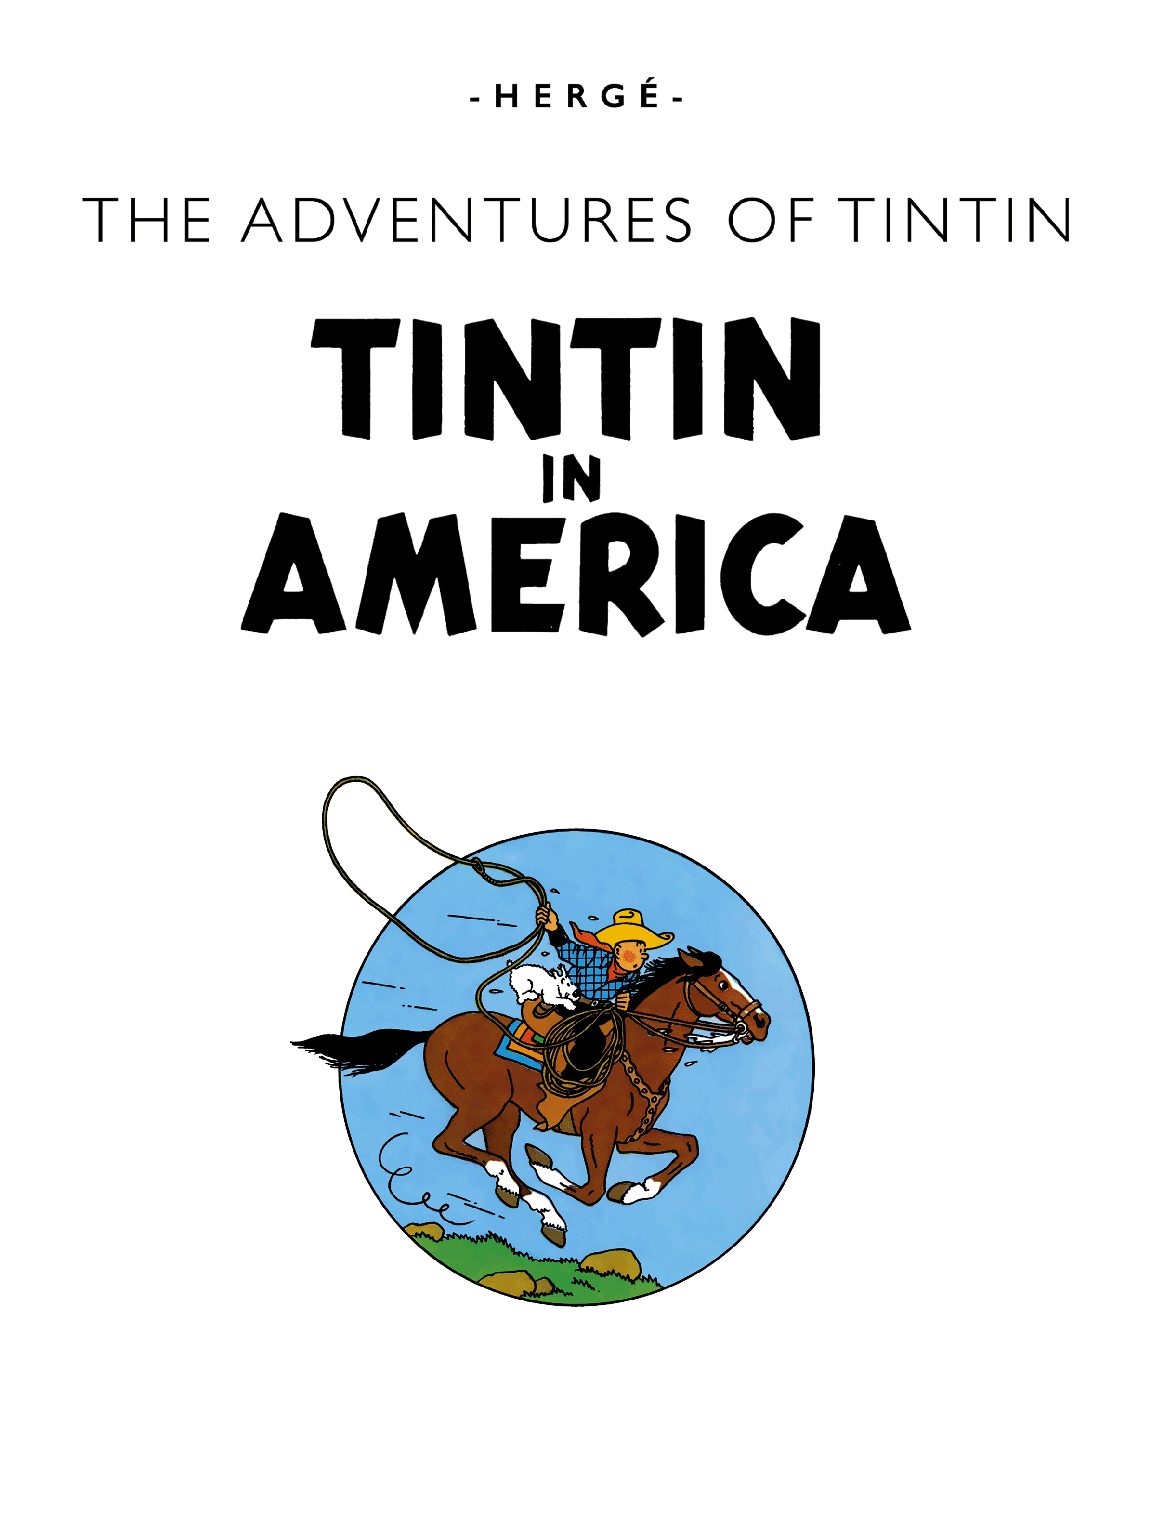 Tintin in America - Title page